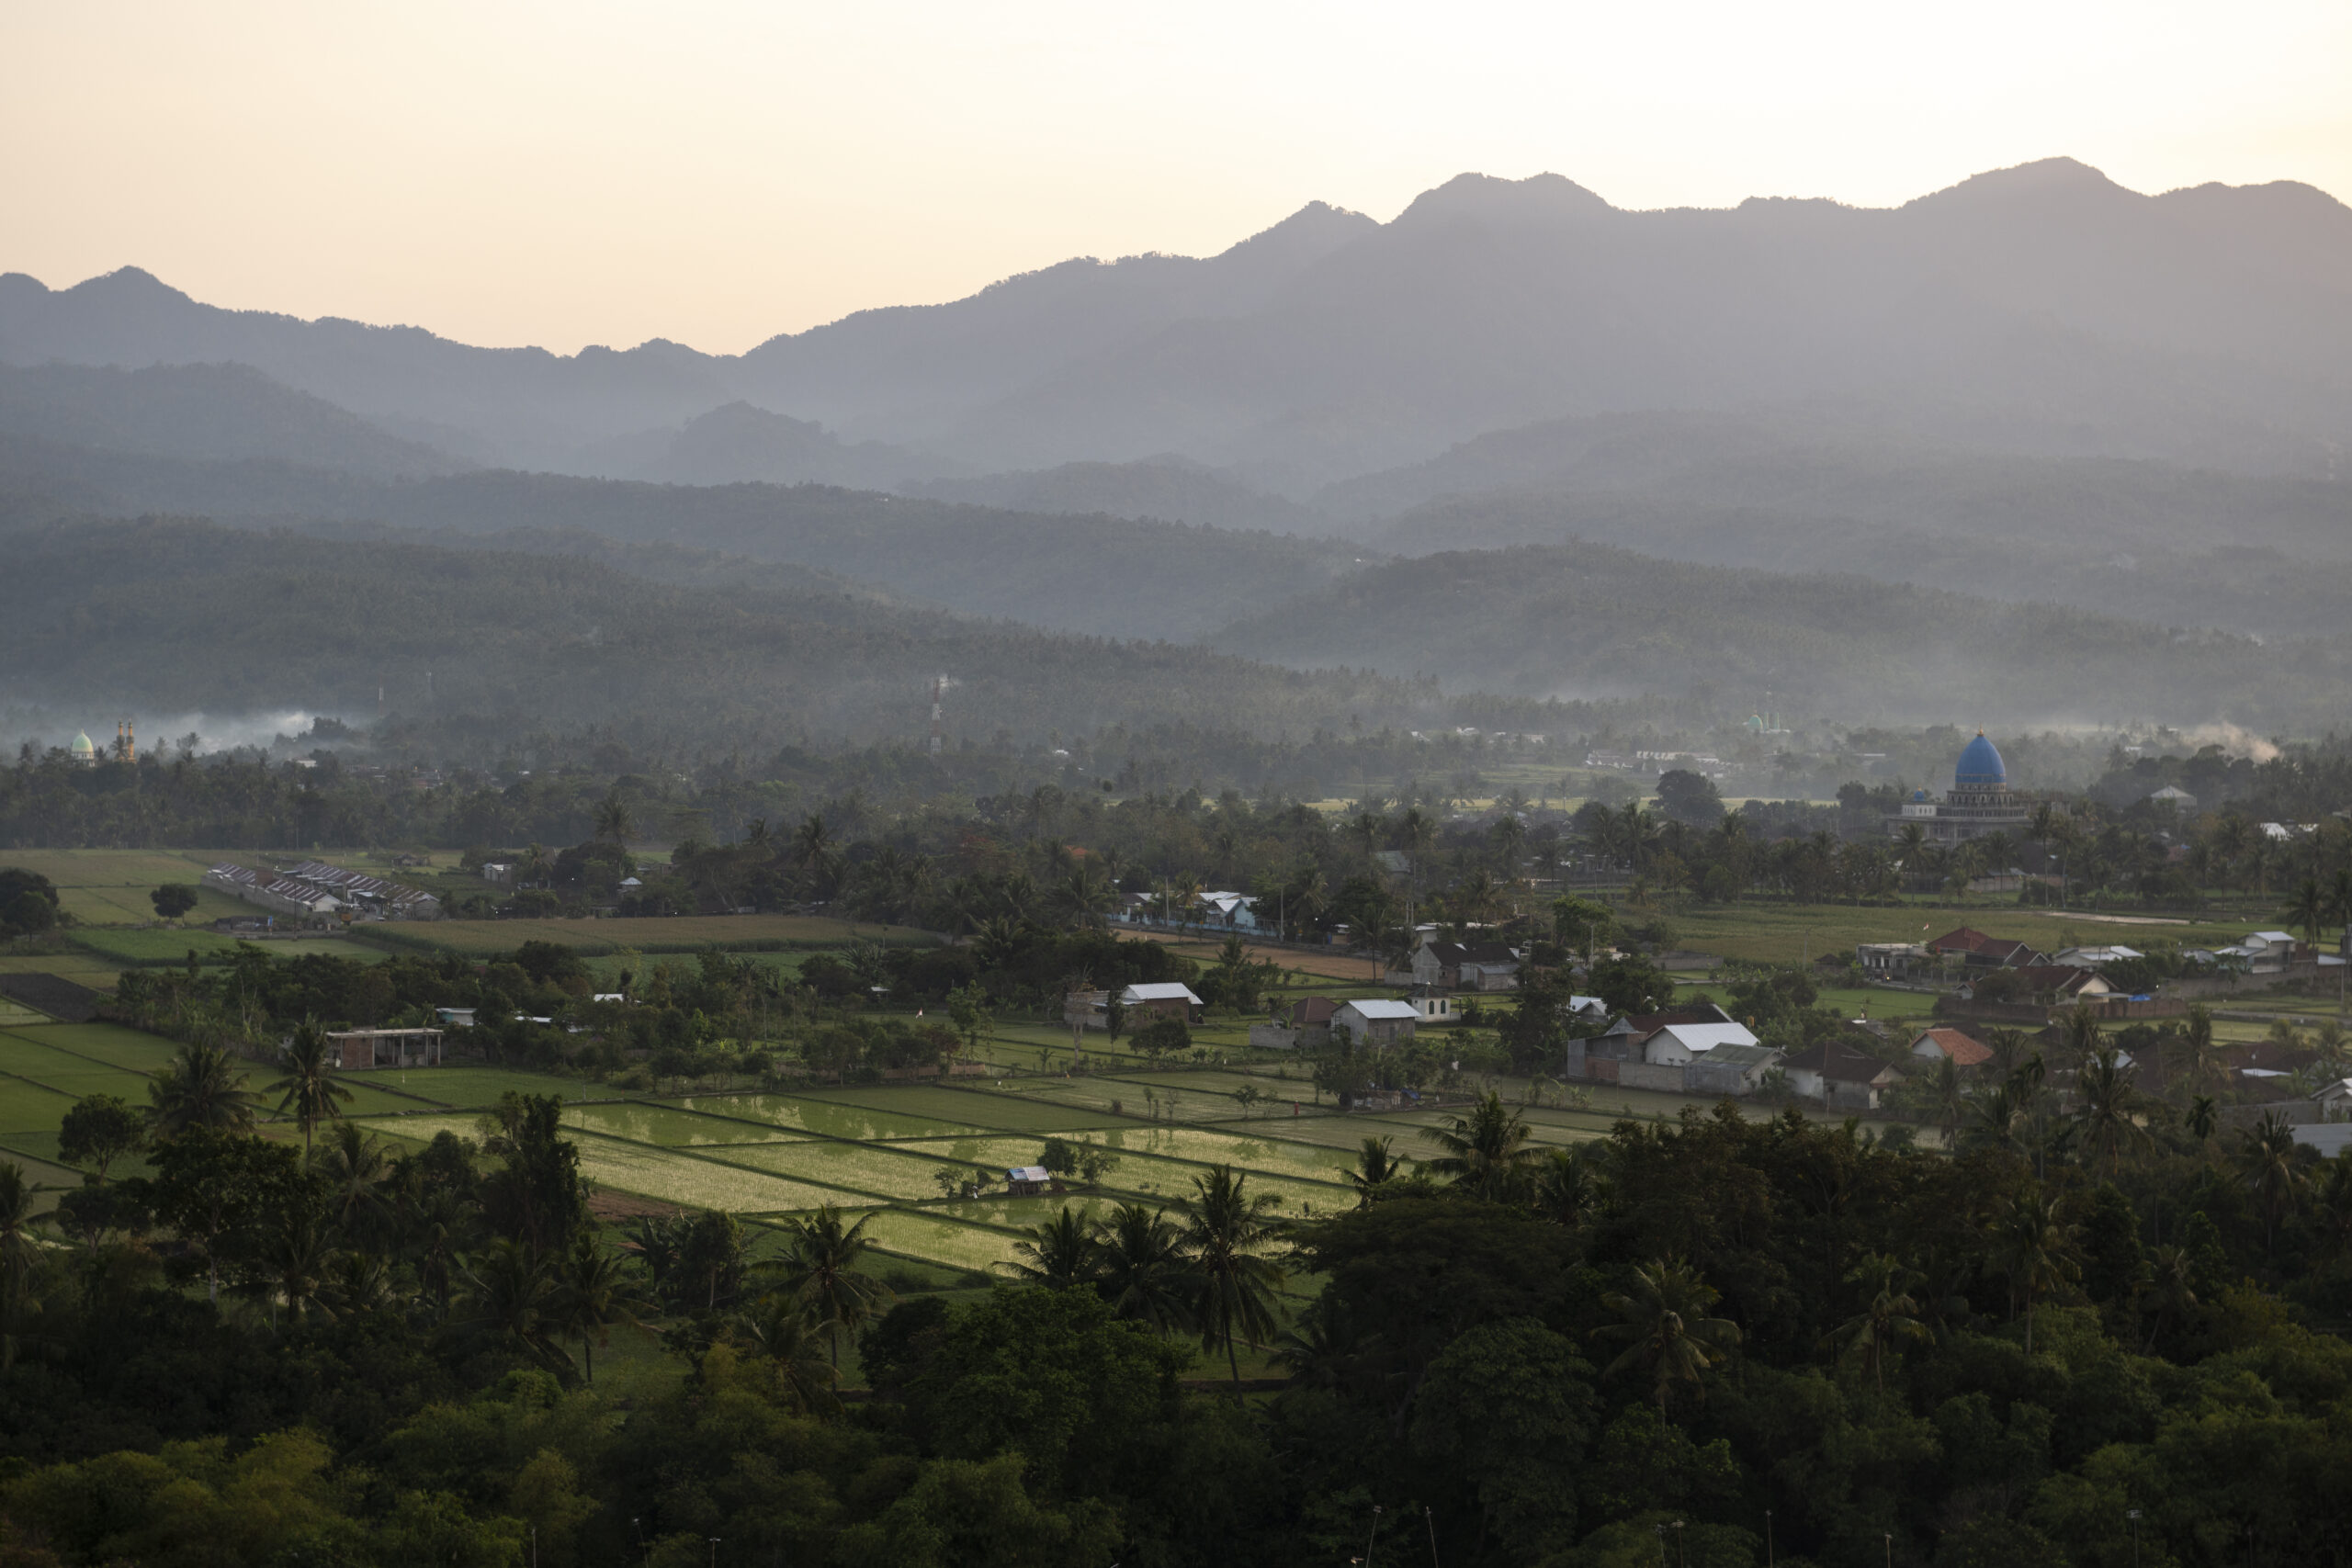 INDONESIA | JUN. 16, 2021 — Bodies of Two Christian Men Found in Mountains